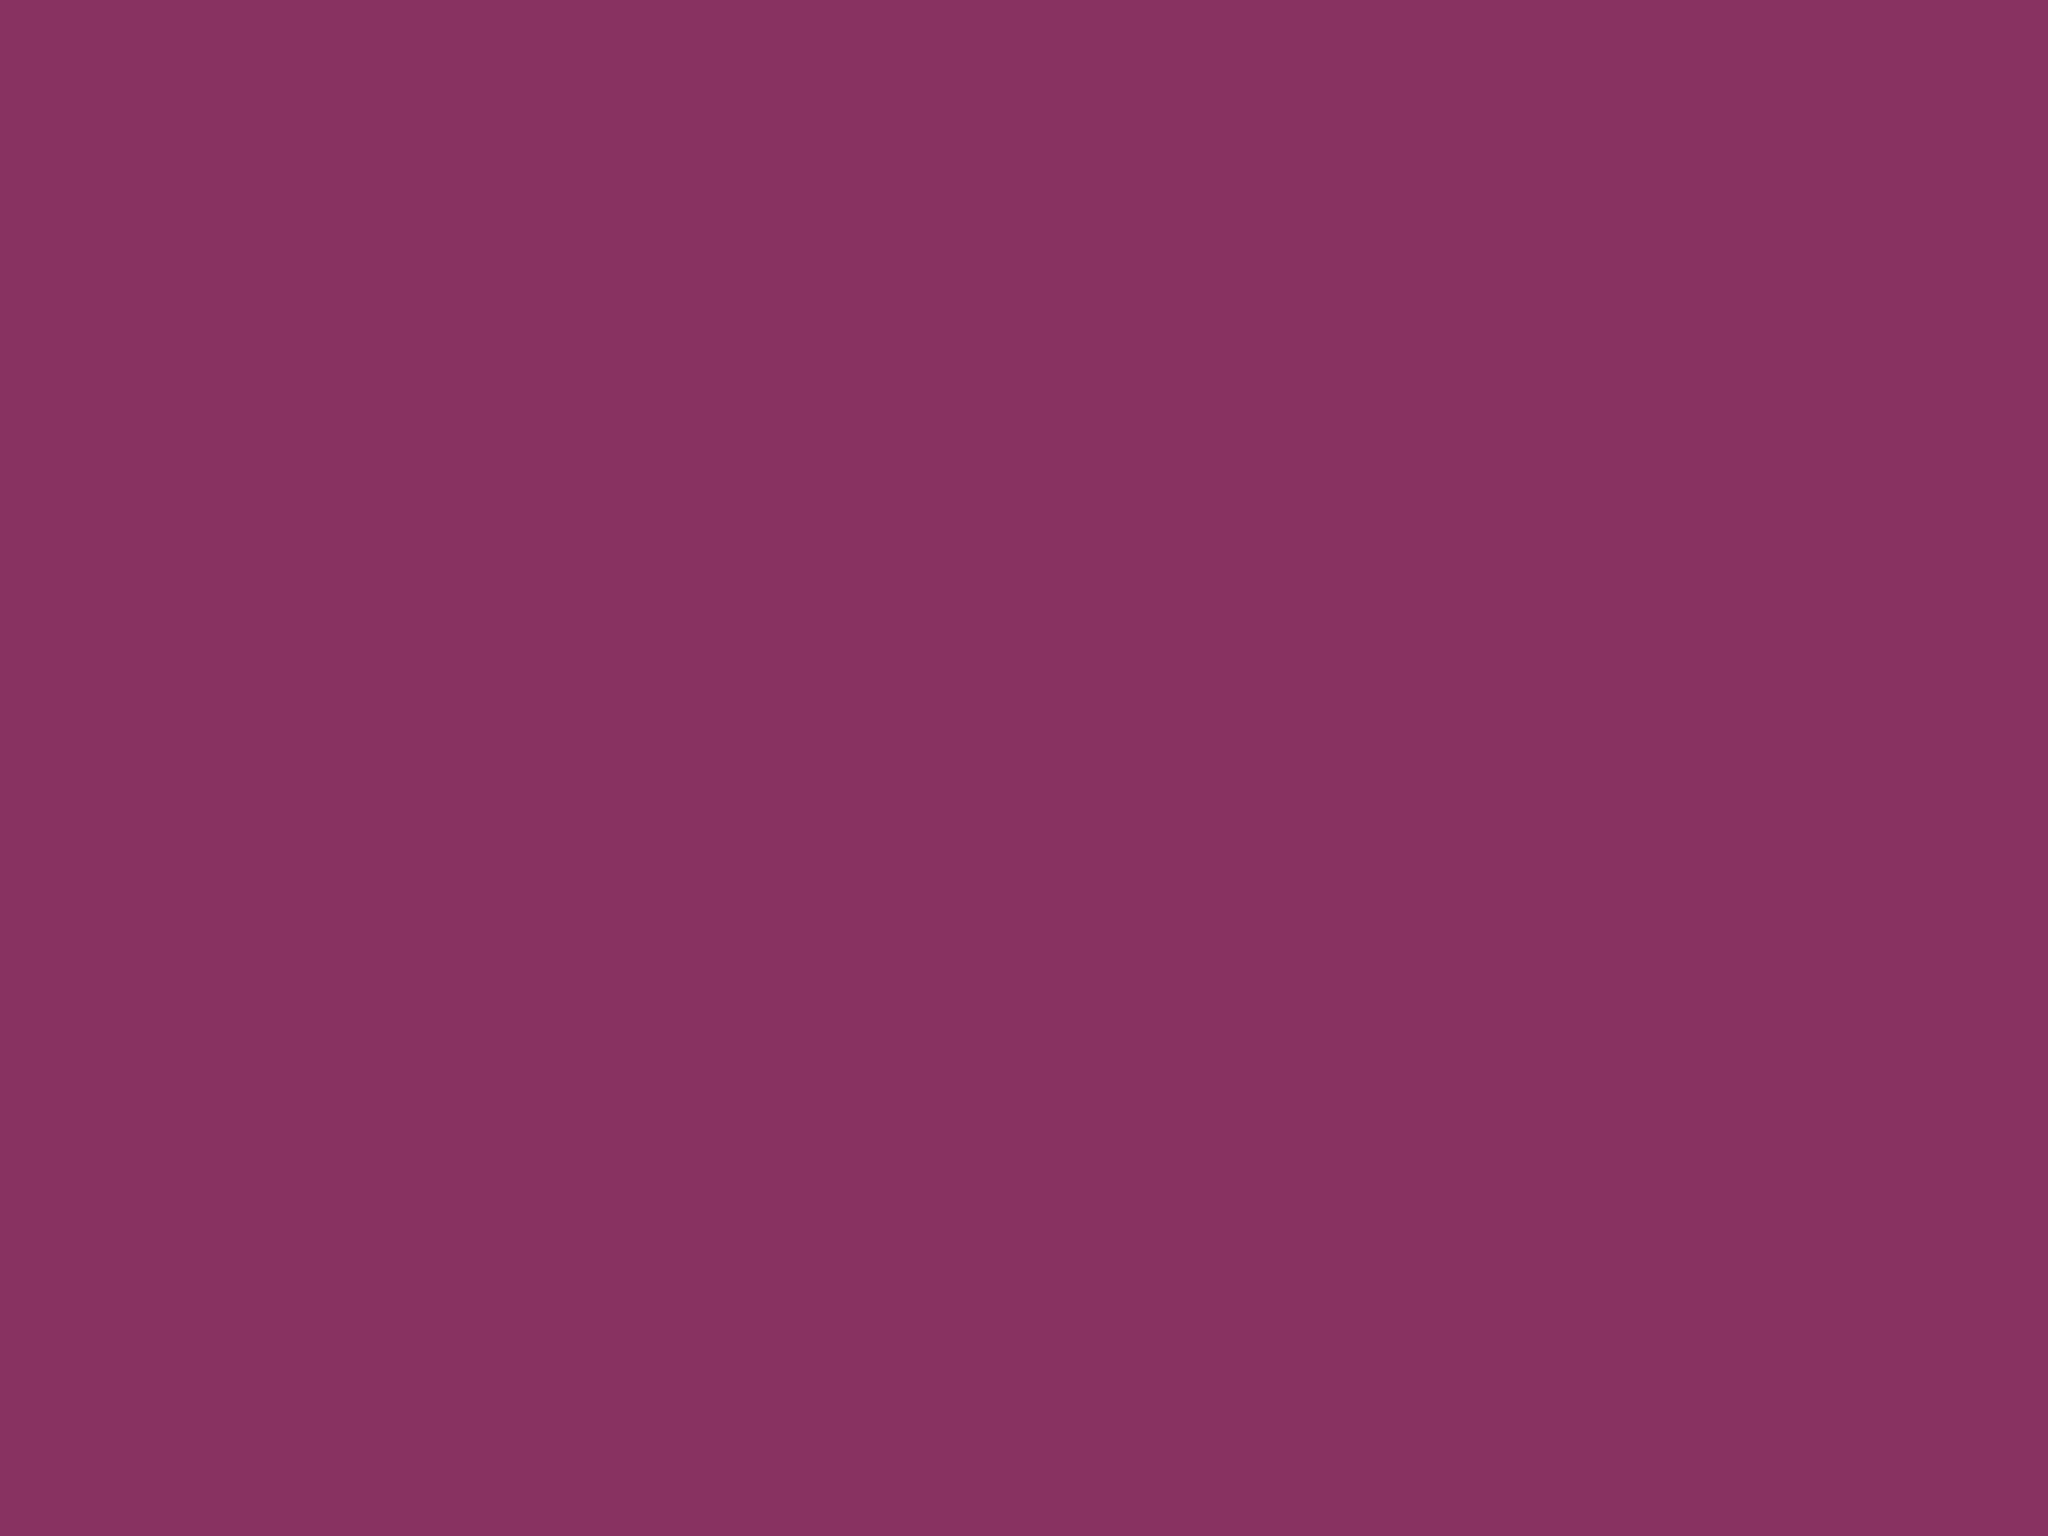 2048x1536 Boysenberry Solid Color Background